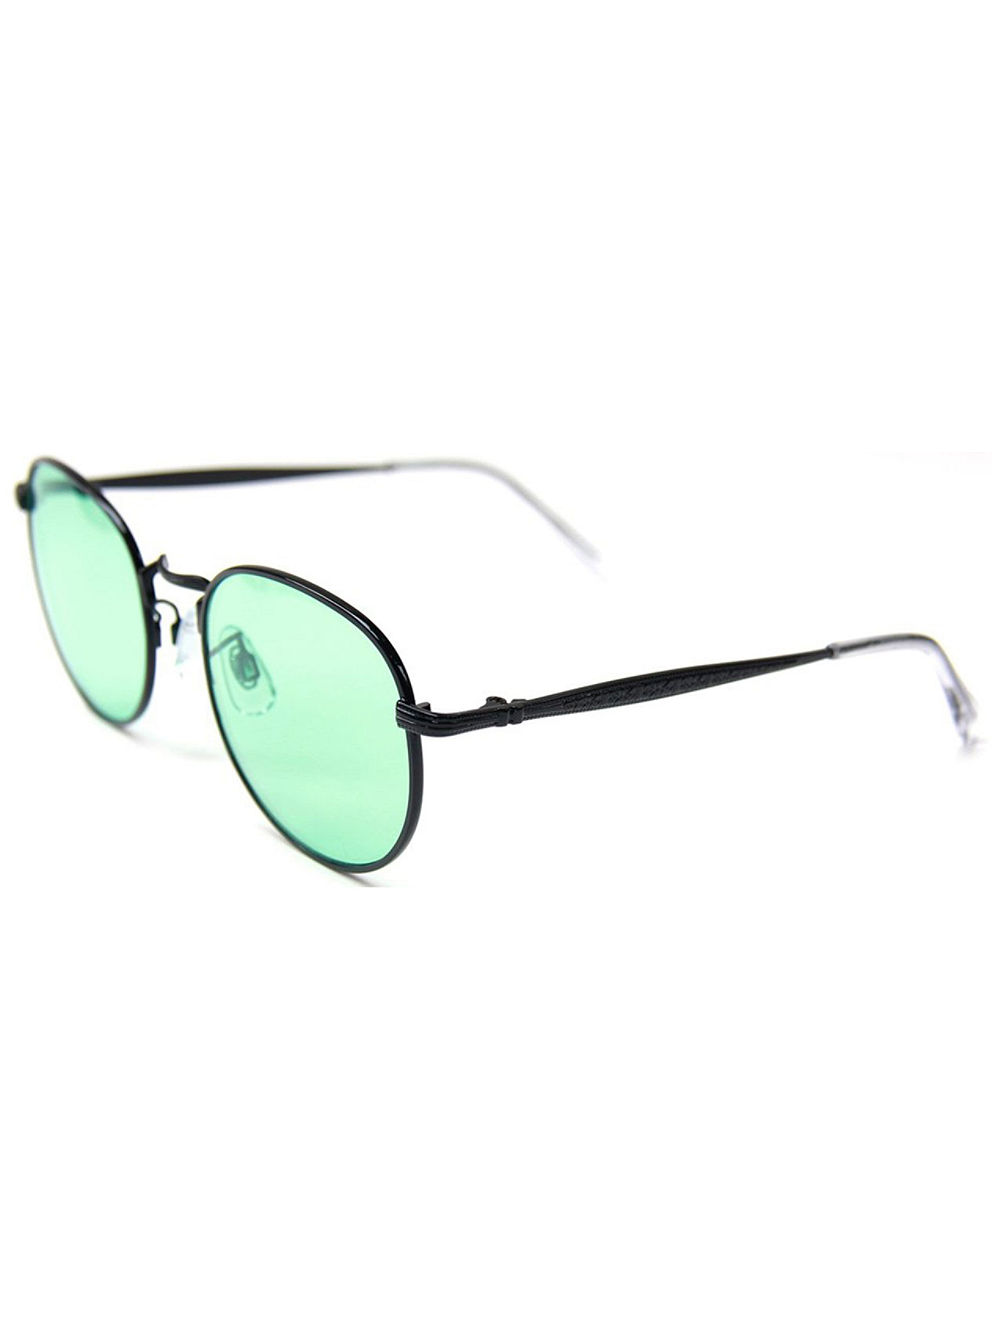 Holidaze Black Green